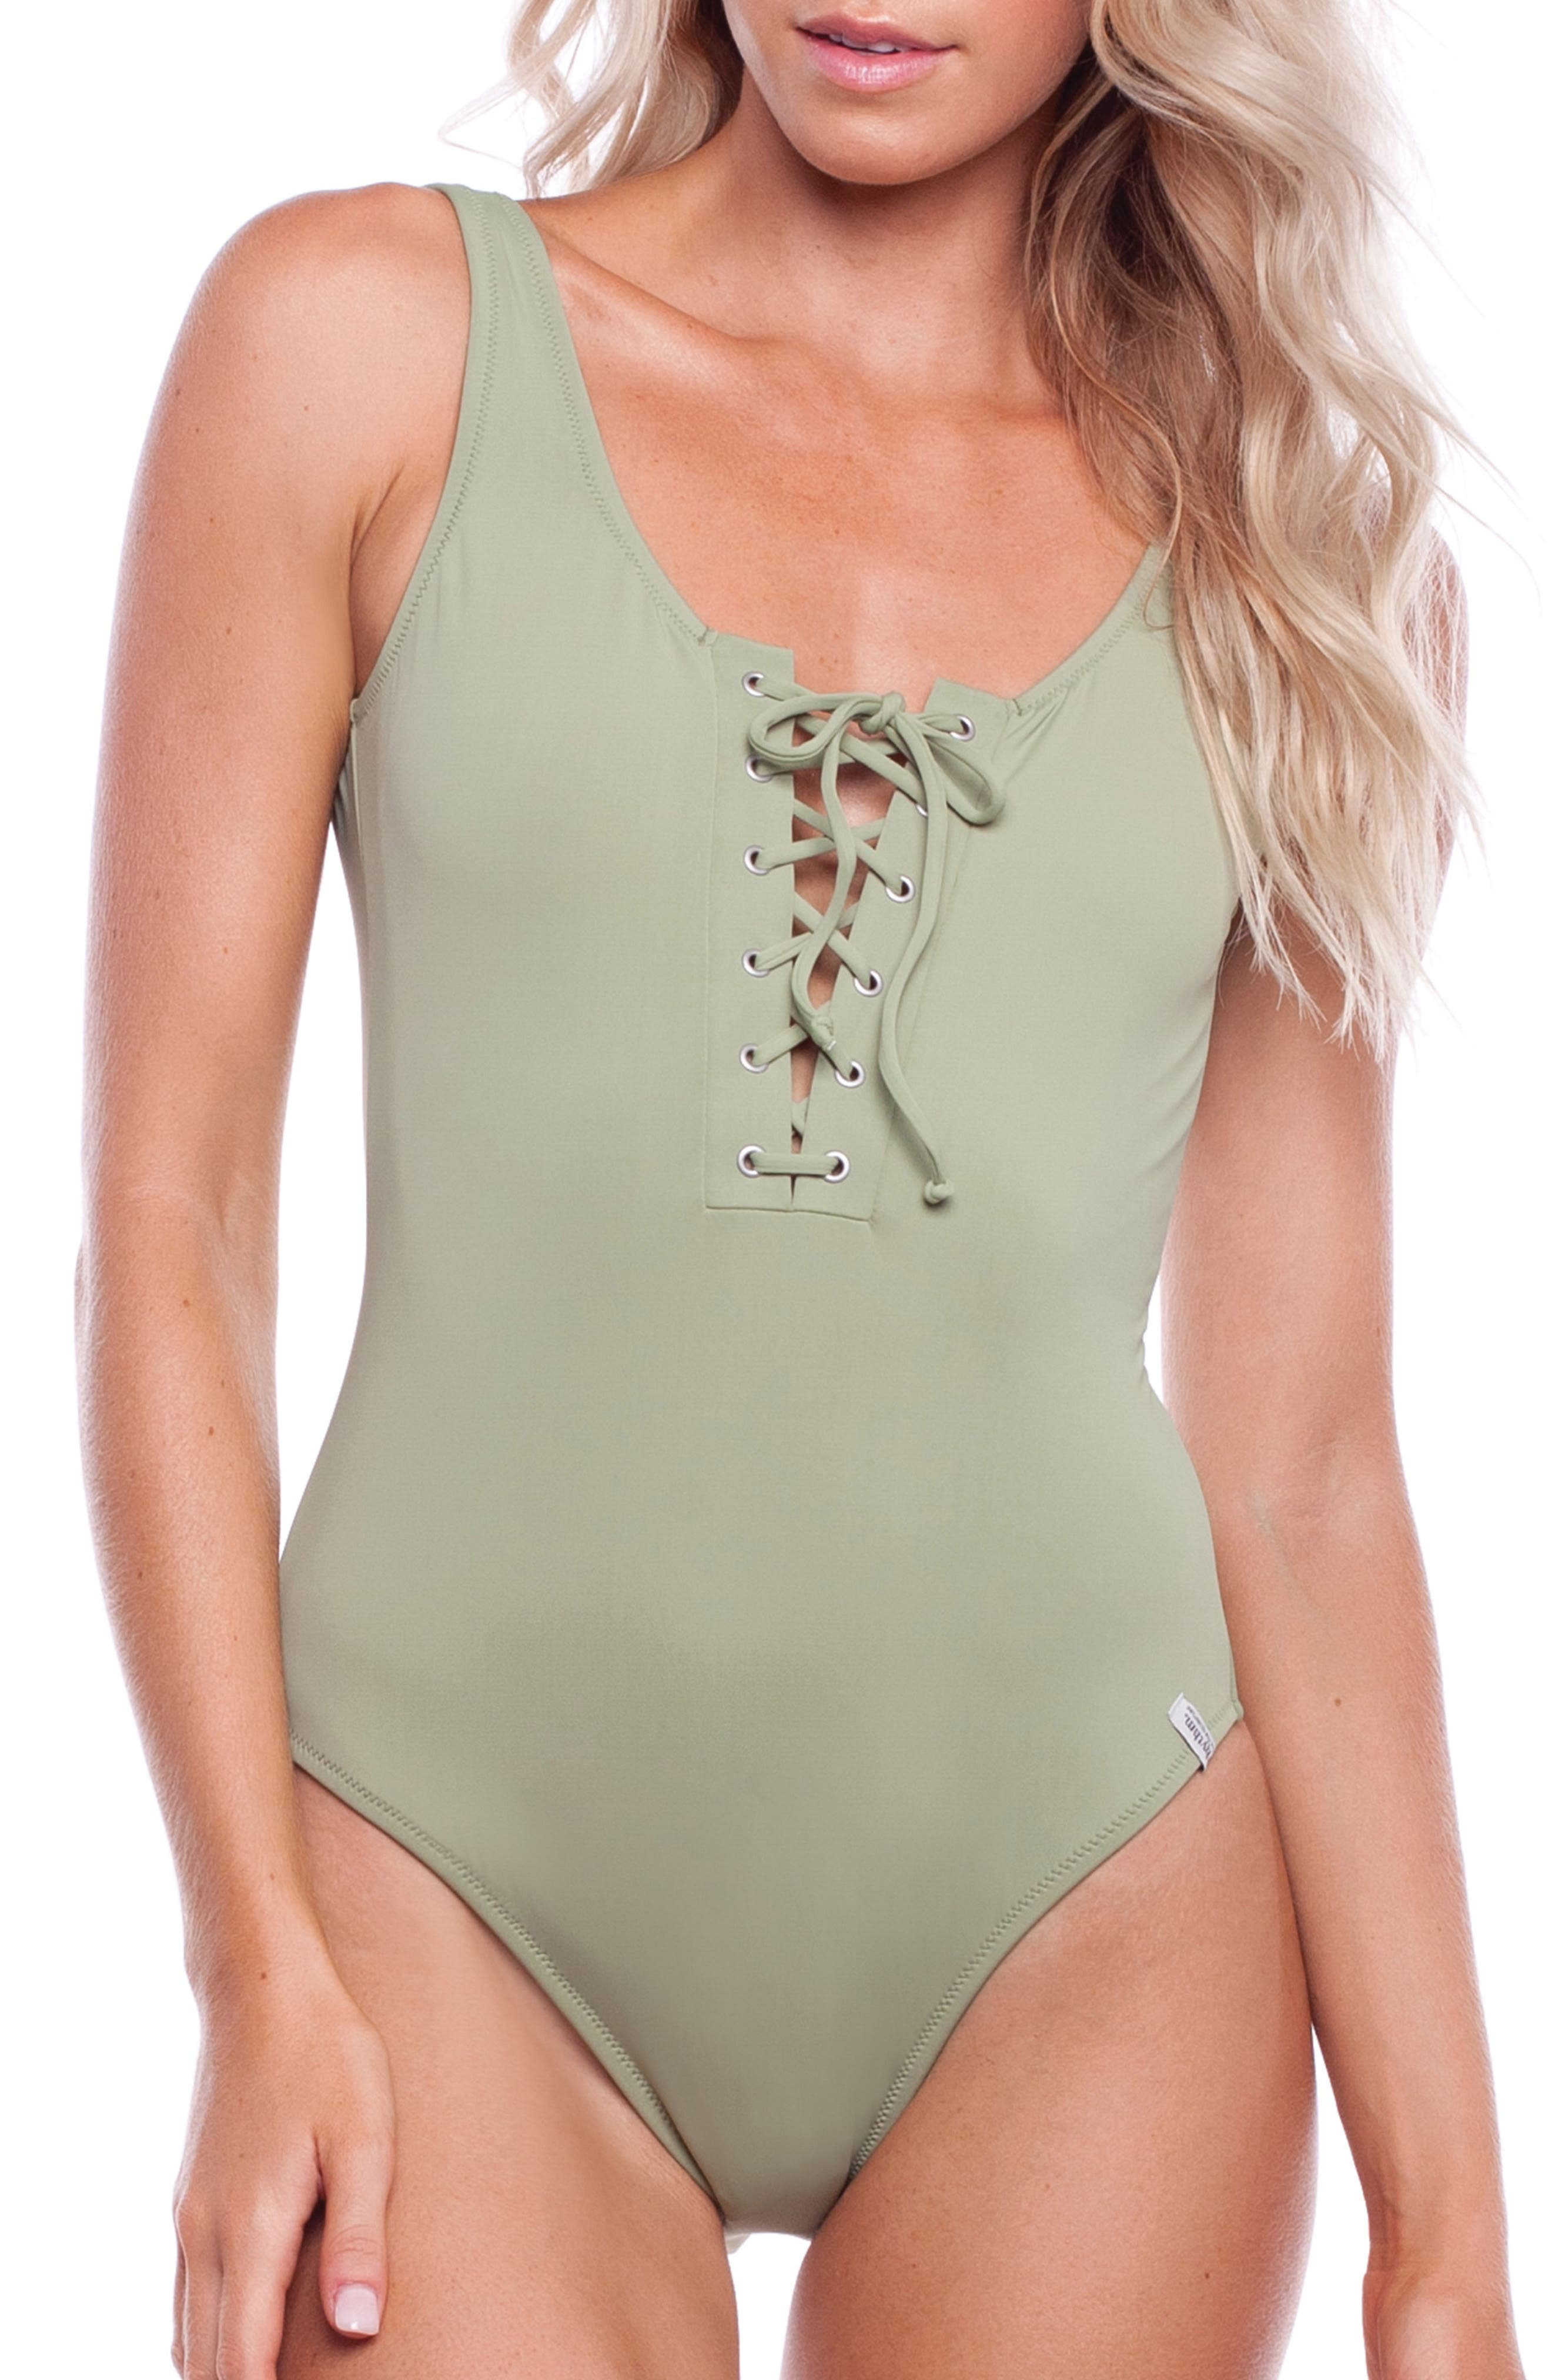 Sunchaser One-Piece Swimsuit,                             Main thumbnail 1, color,                             PALM